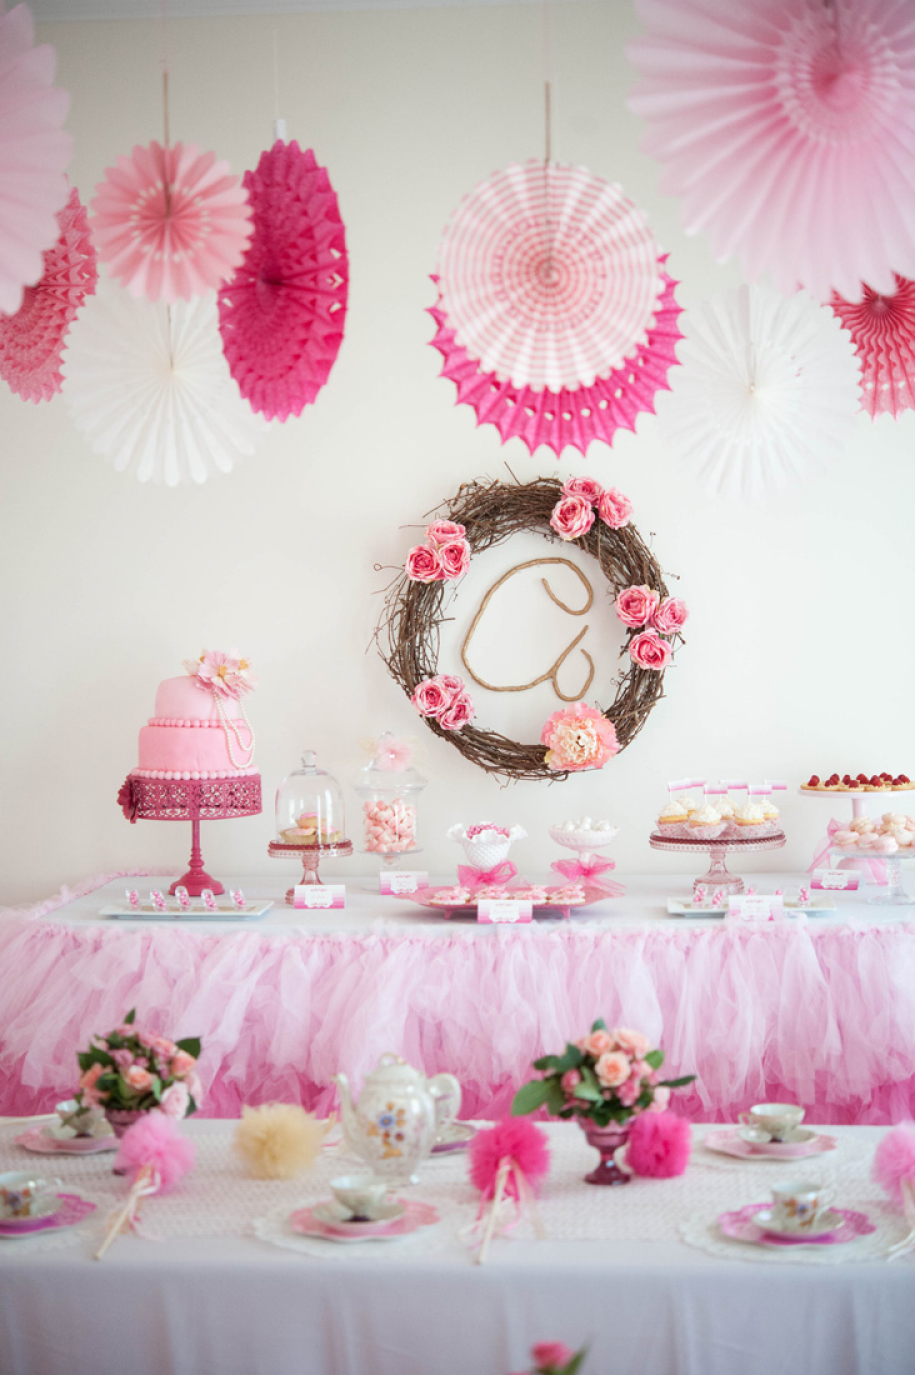 A Whimsical amp Sweet Ombre Princess Party Anders Ruff